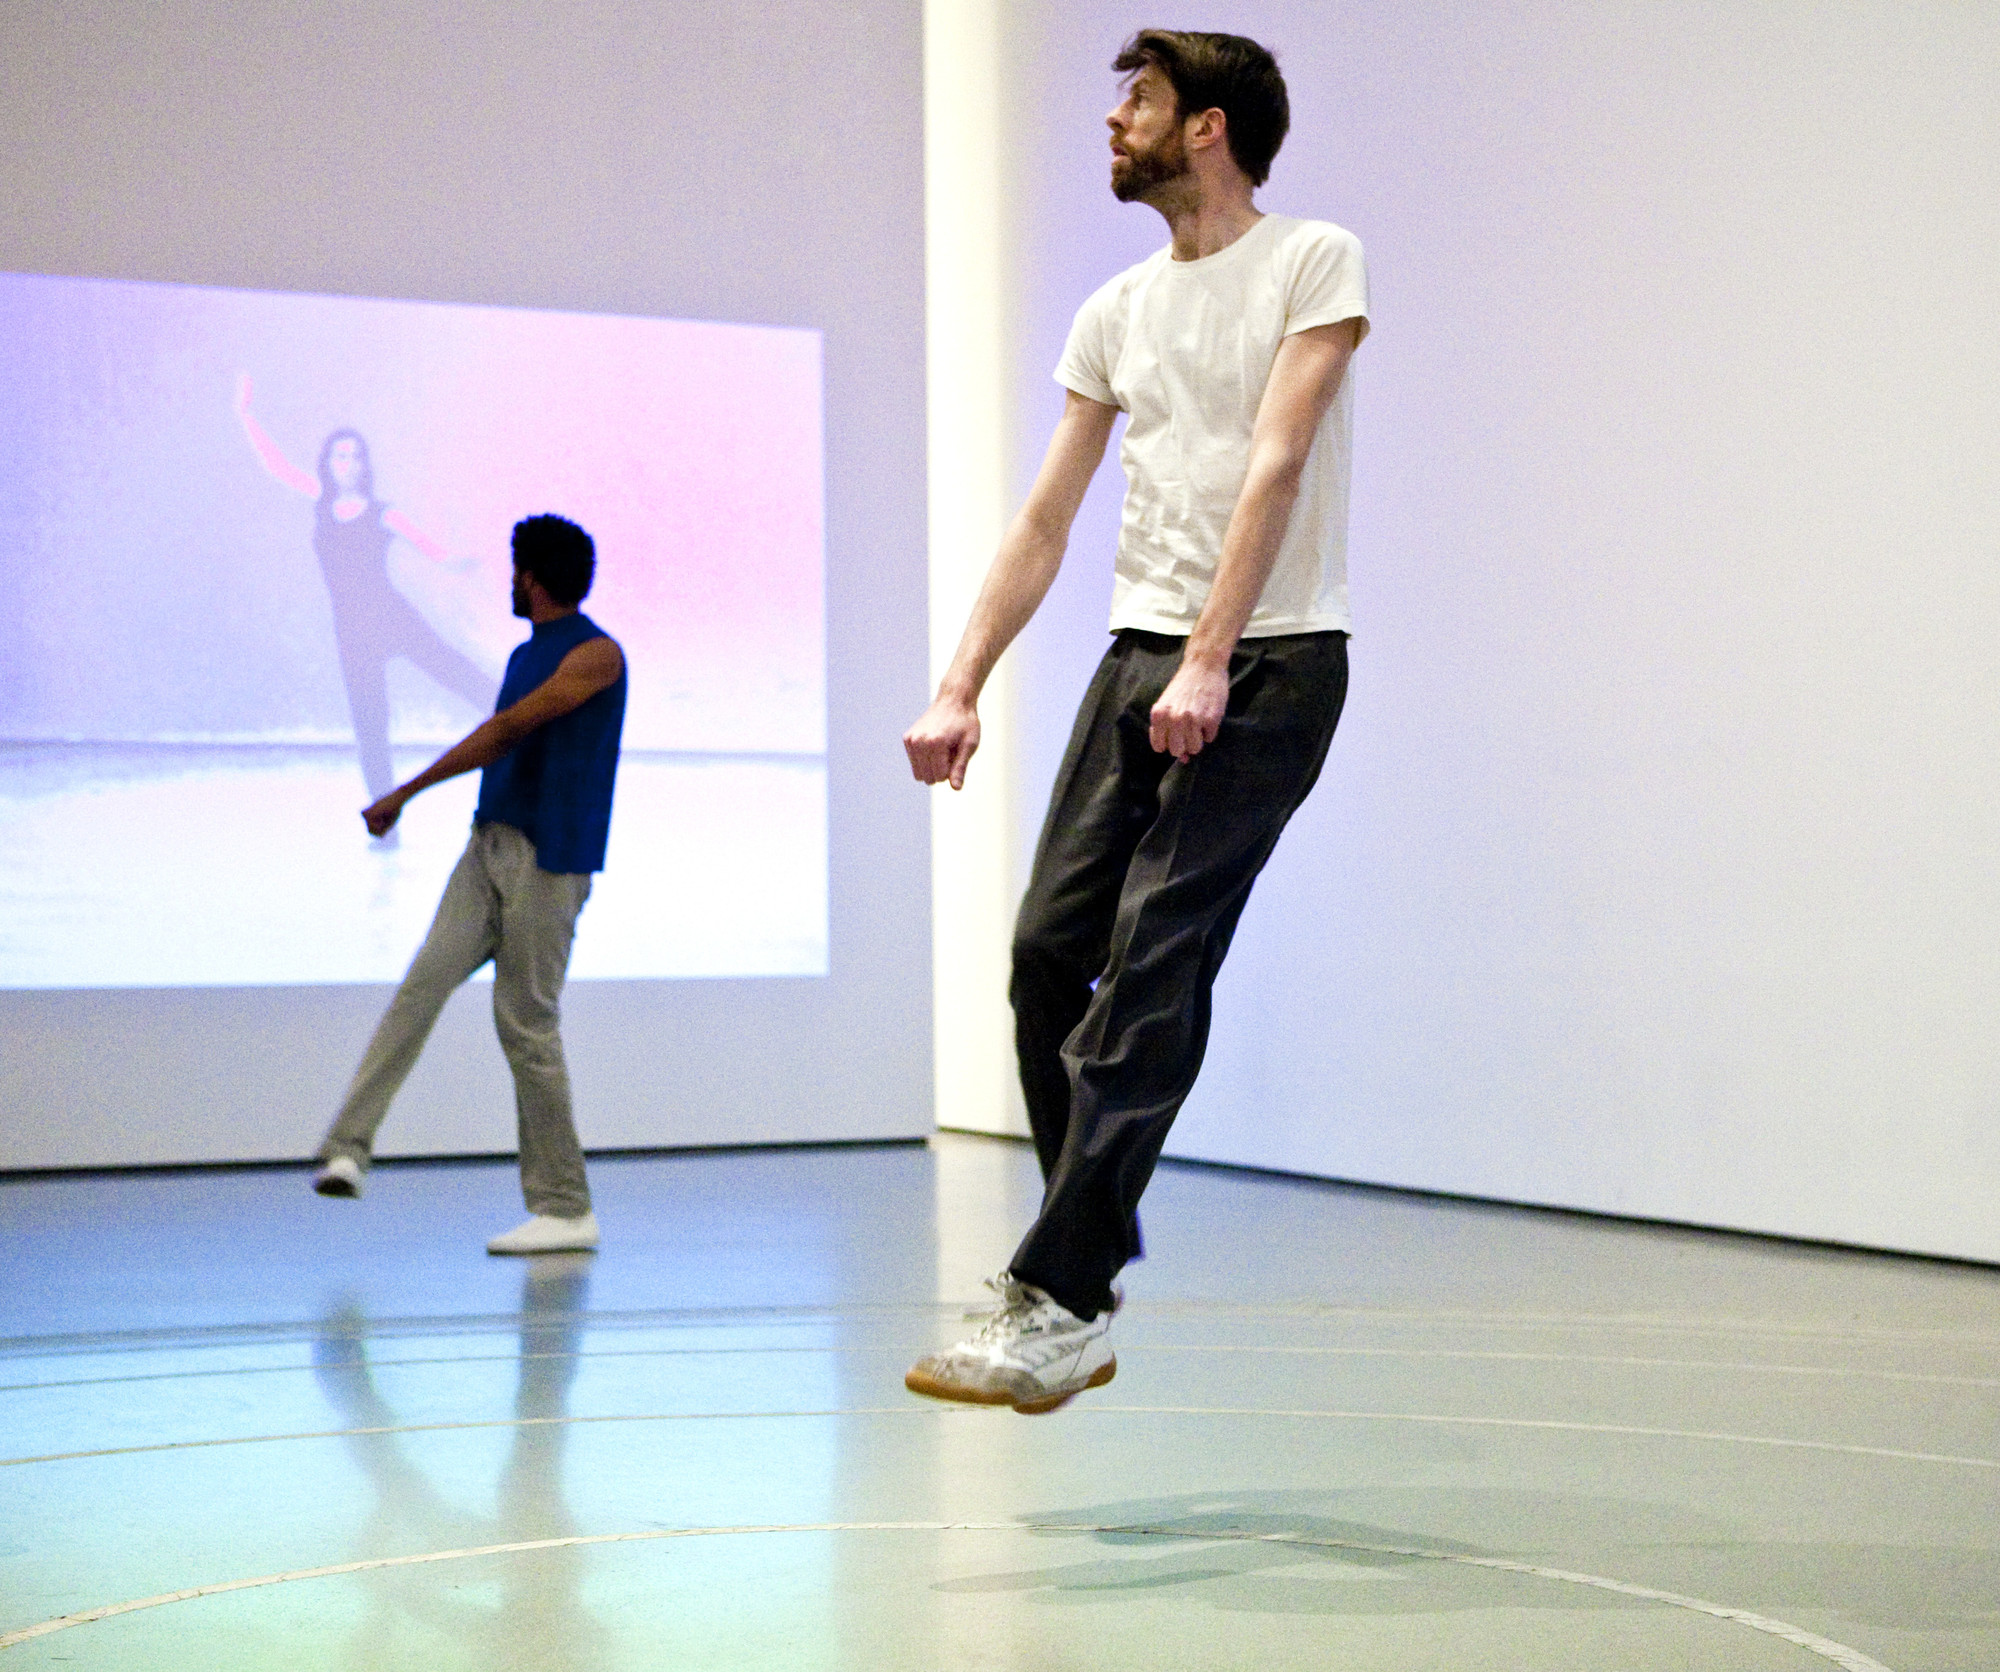 Yvonne Rainer. Trio A. 1965. Performed by Jimmy Robert and Ian White at TheMuseum of Modern Art, 2009. © 2009 Yi-Chun Wu / The Museum of Modern Art